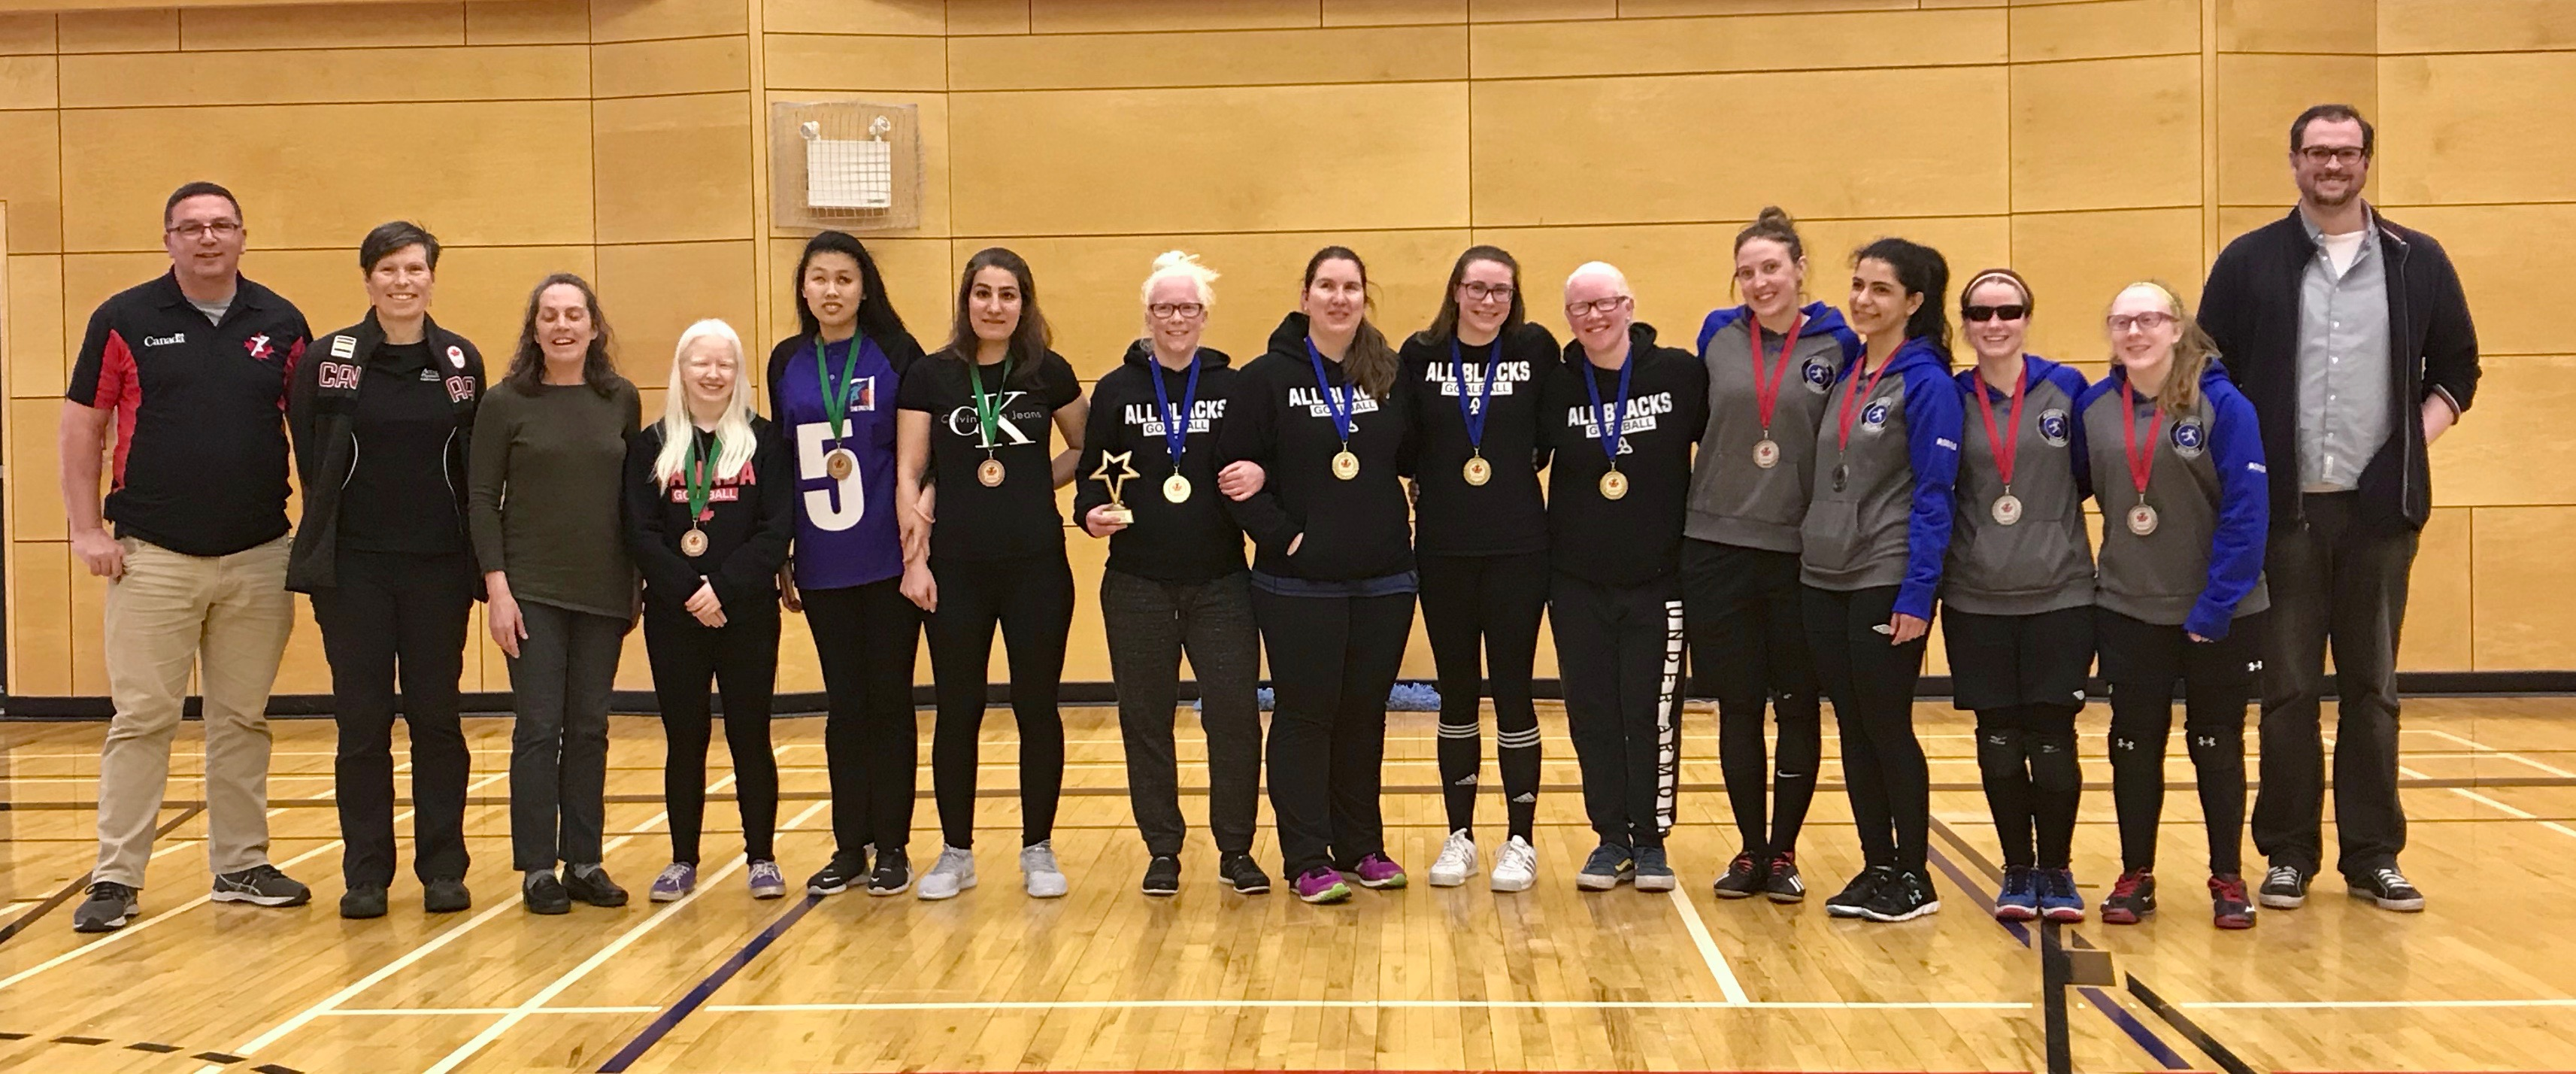 2019 all medal winners women